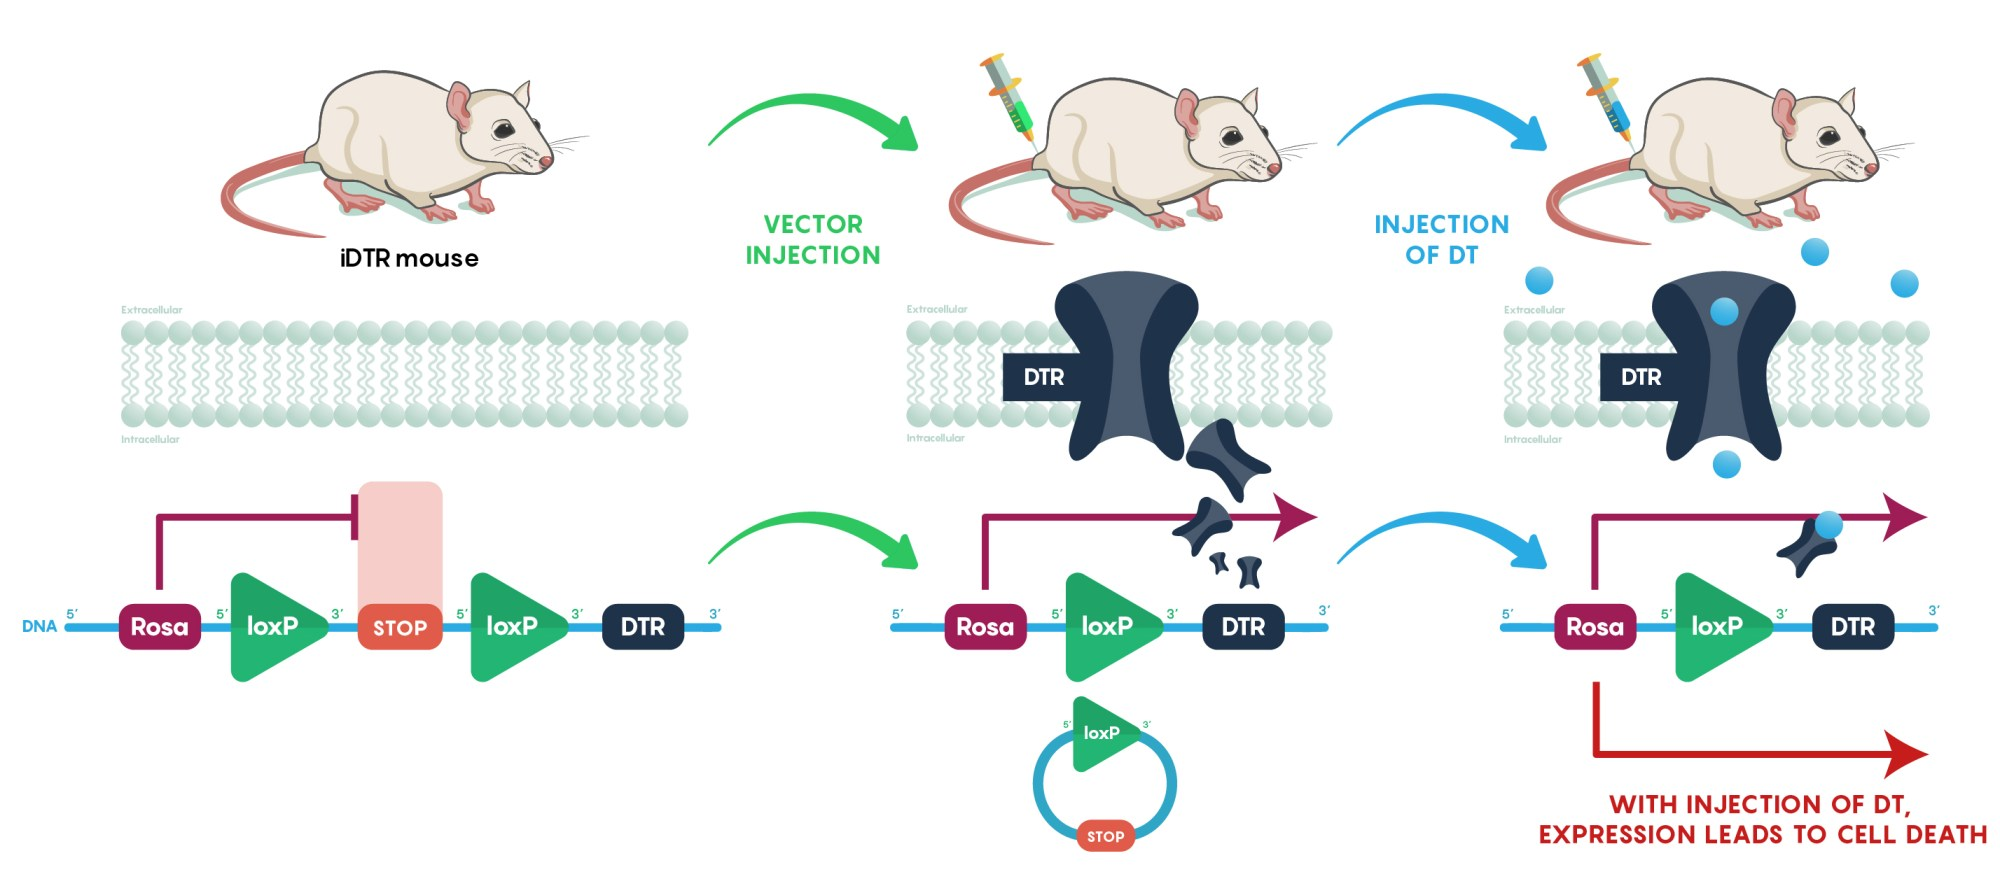 hight resolution of schematic diagram illustrating the concept of using the rosa idtr mouse to eliminate specific groups